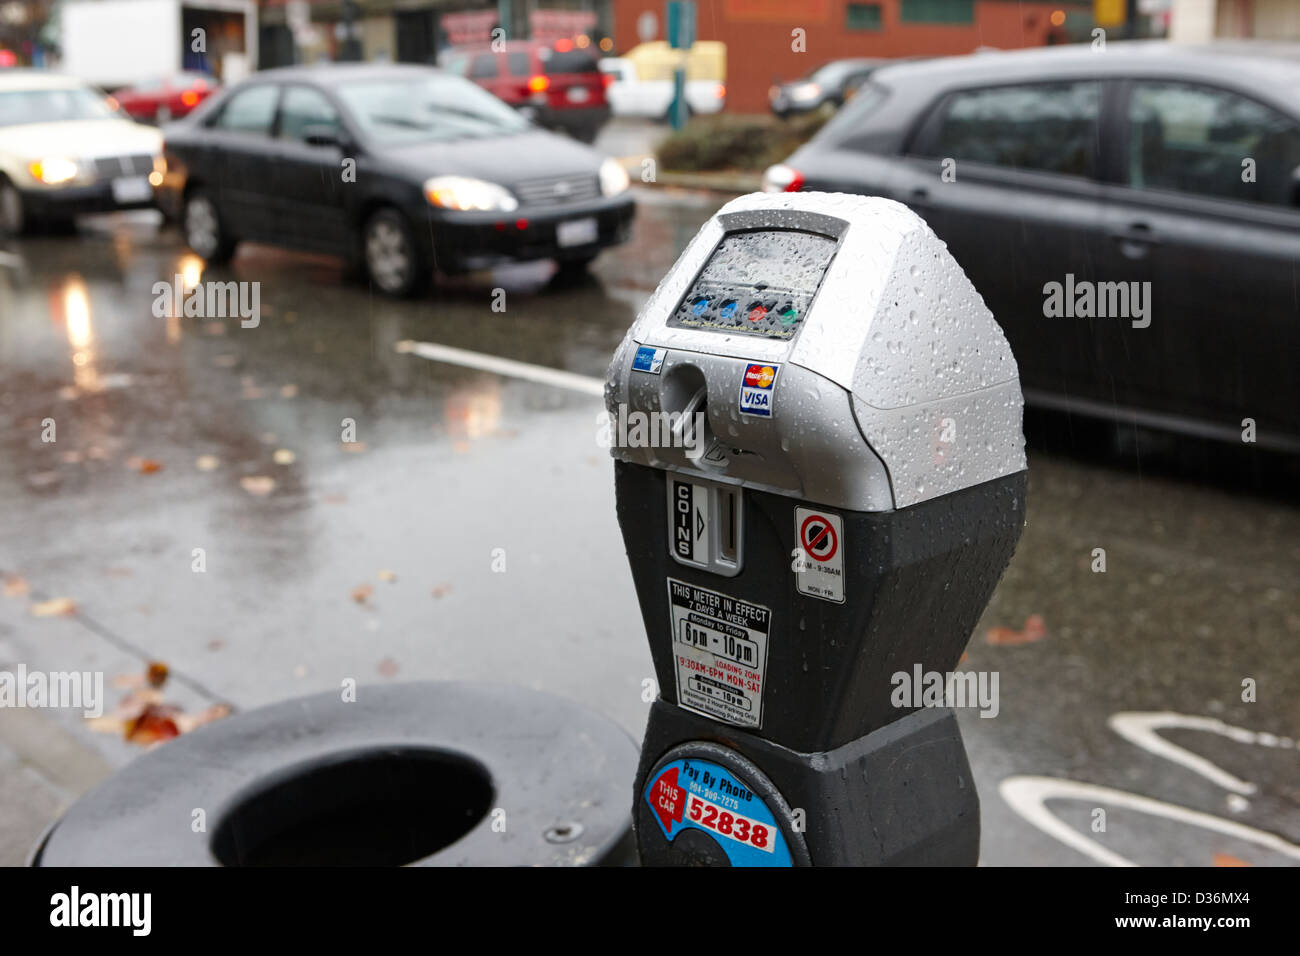 water soaked coin and credit card parking meter on the streets of downtown Vancouver BC Canada - Stock Image